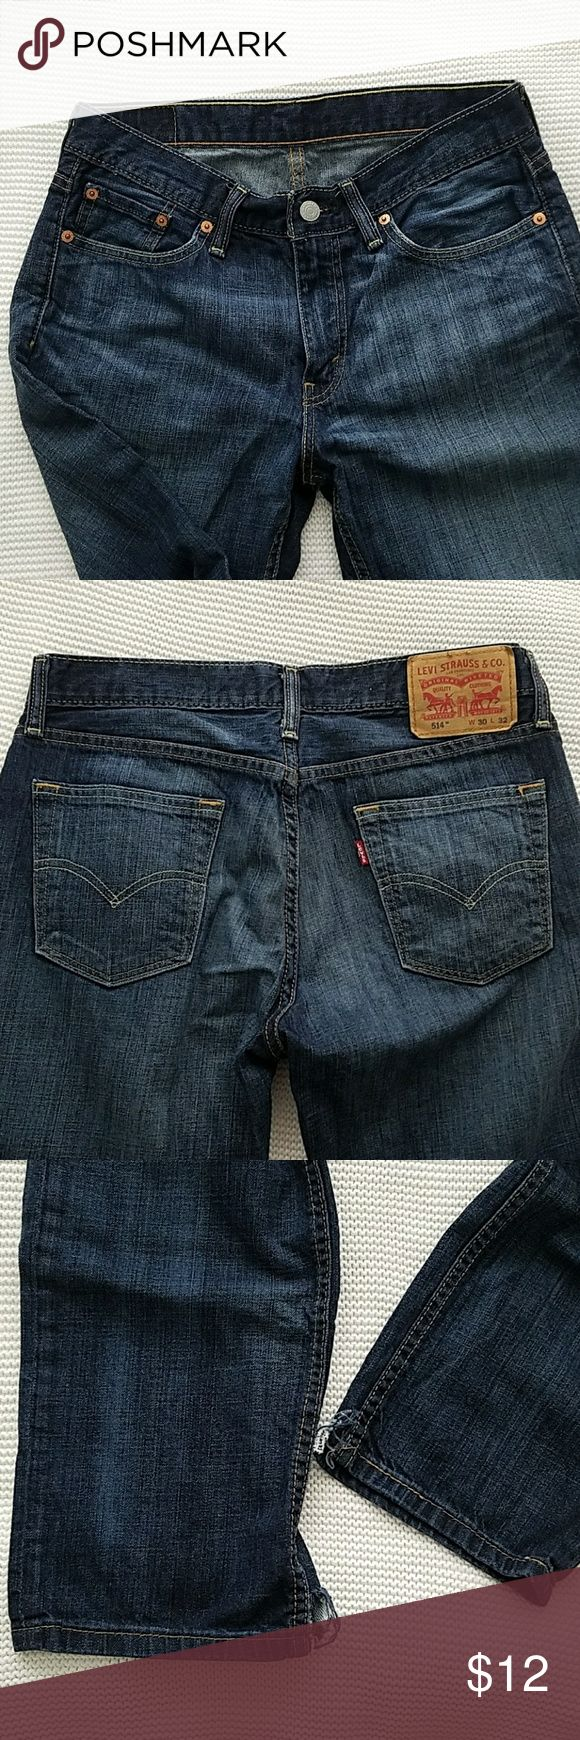 Men's 30/32 levis 514 🌿LEVI STRAUSS JEANS🌿 men's size 30 waist 32 length  Comfortable pants!! Cuts on the bottom of the jeans.. refer to pictures!  FEEL FREE TO ASK ANY QUESTIONS! 😊 Levi's Jeans Bootcut